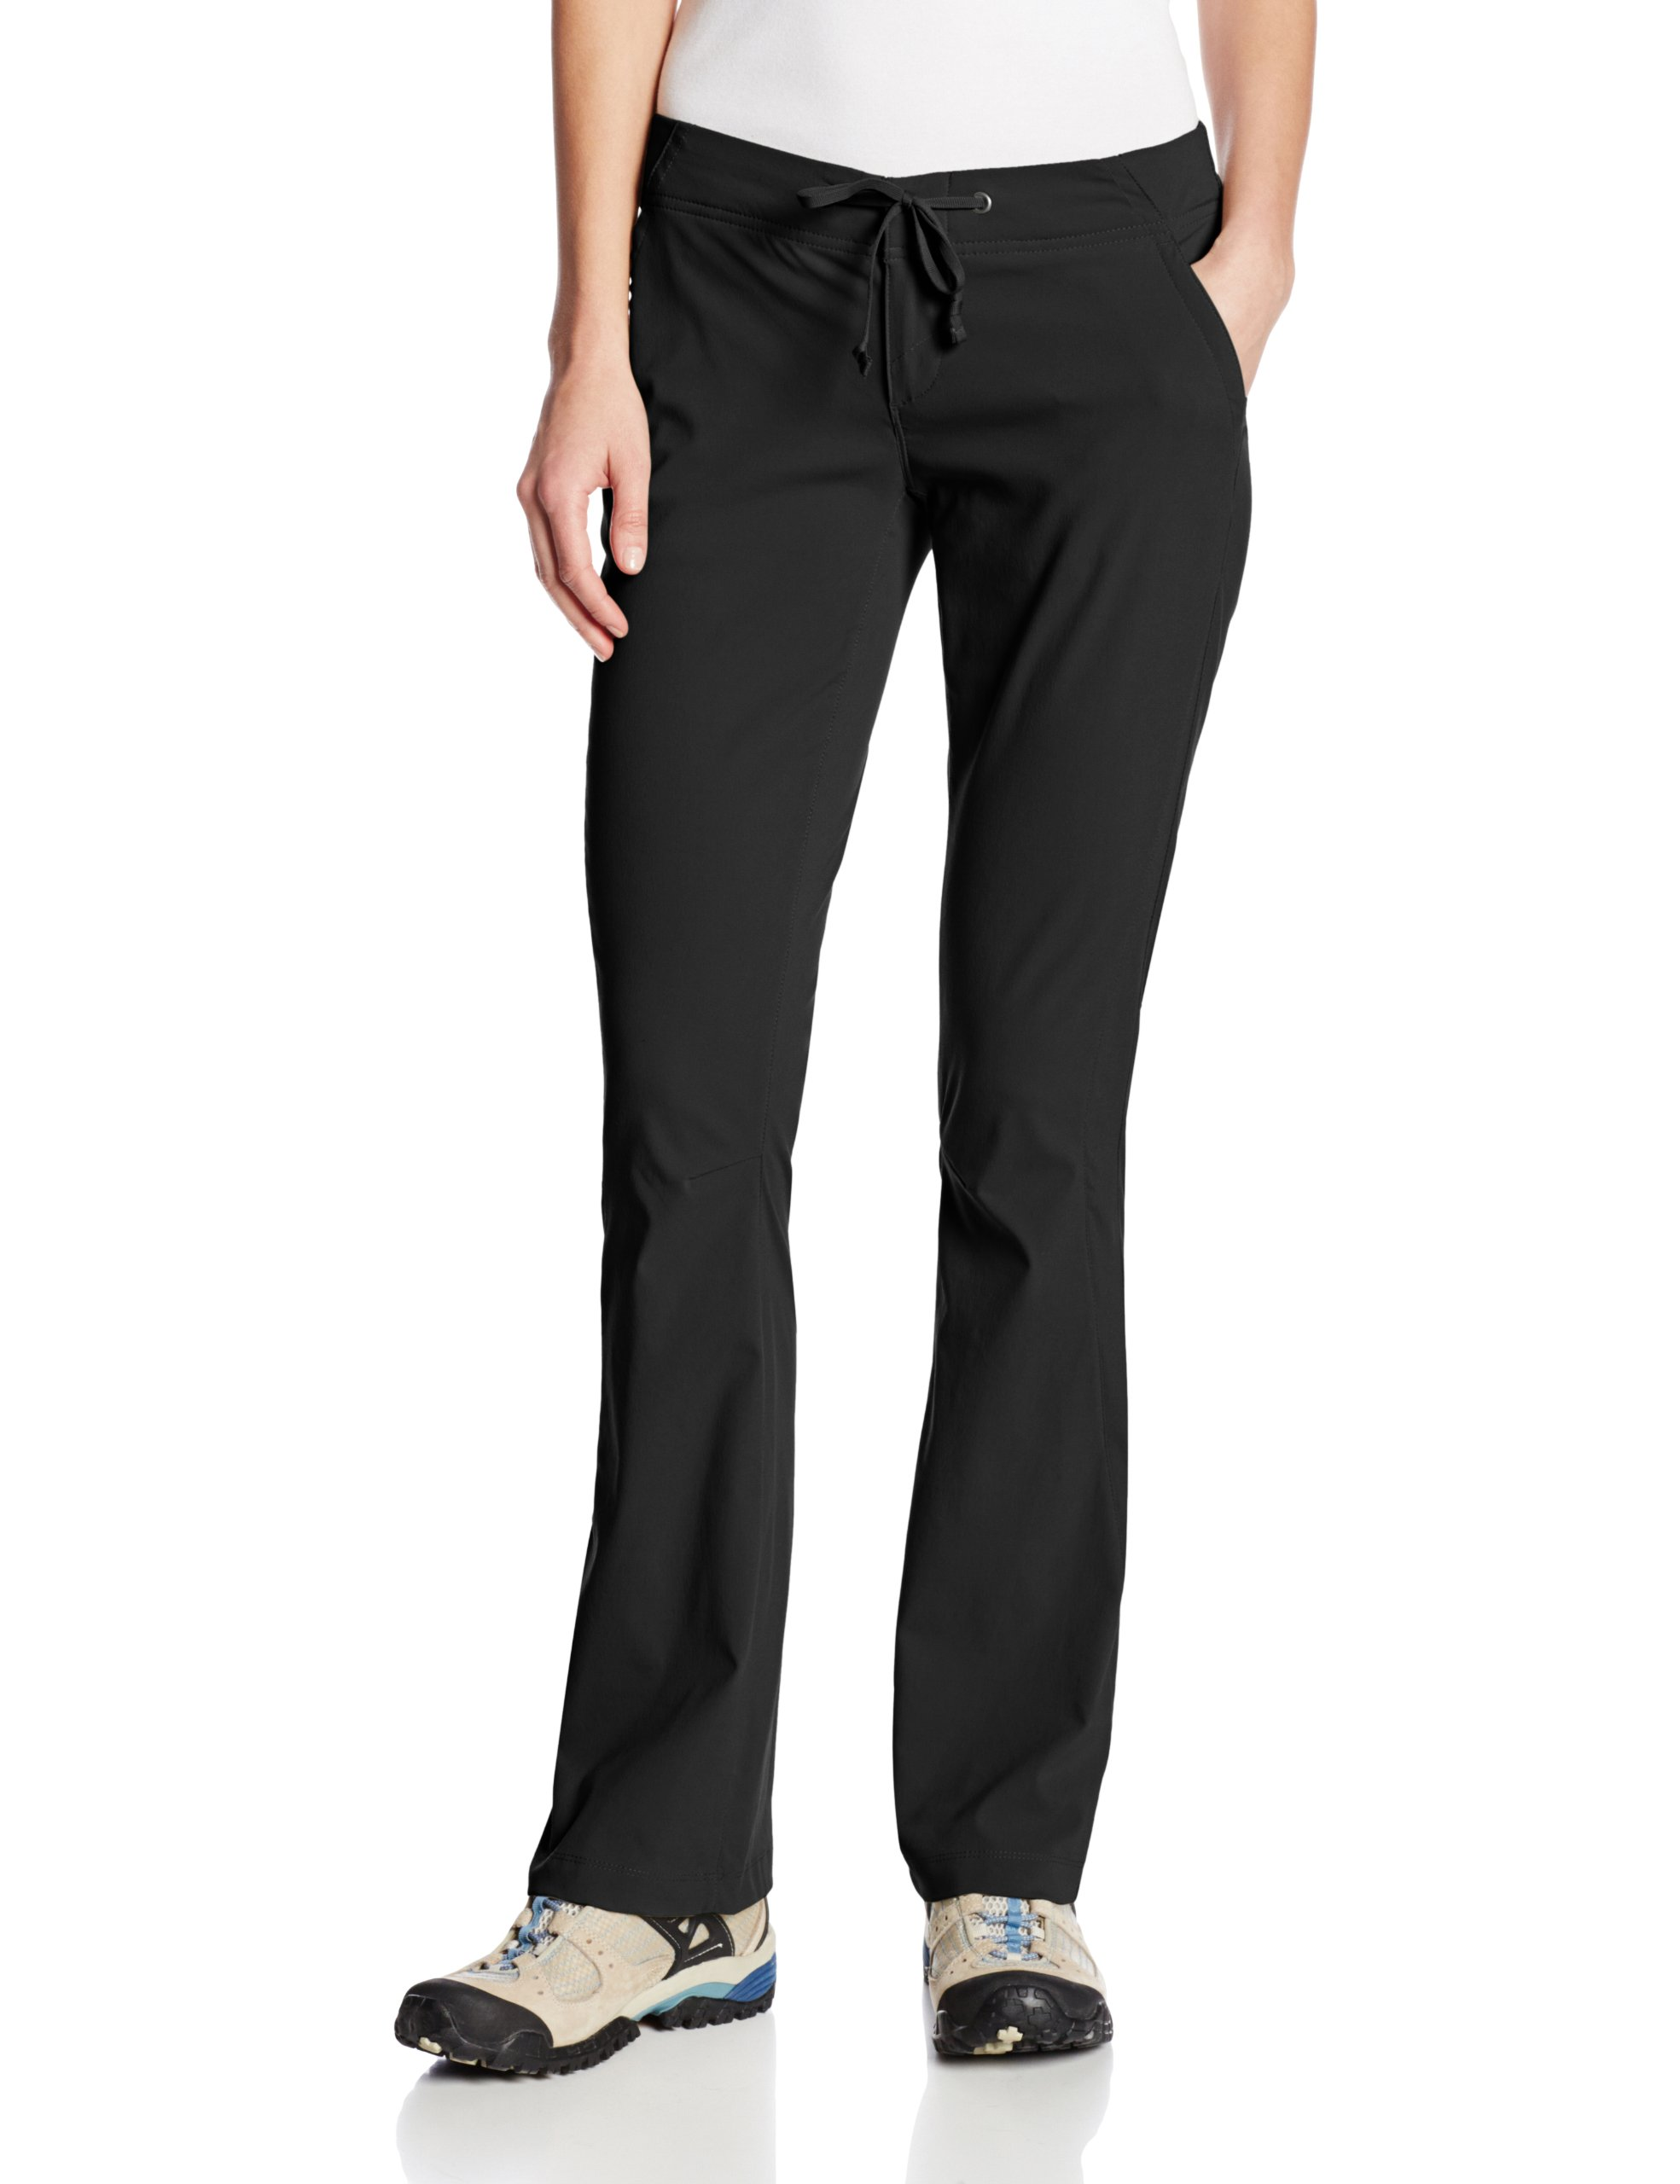 Columbia Women's Anytime Outdoor Boot Cut Pant Pants, black, 8Short